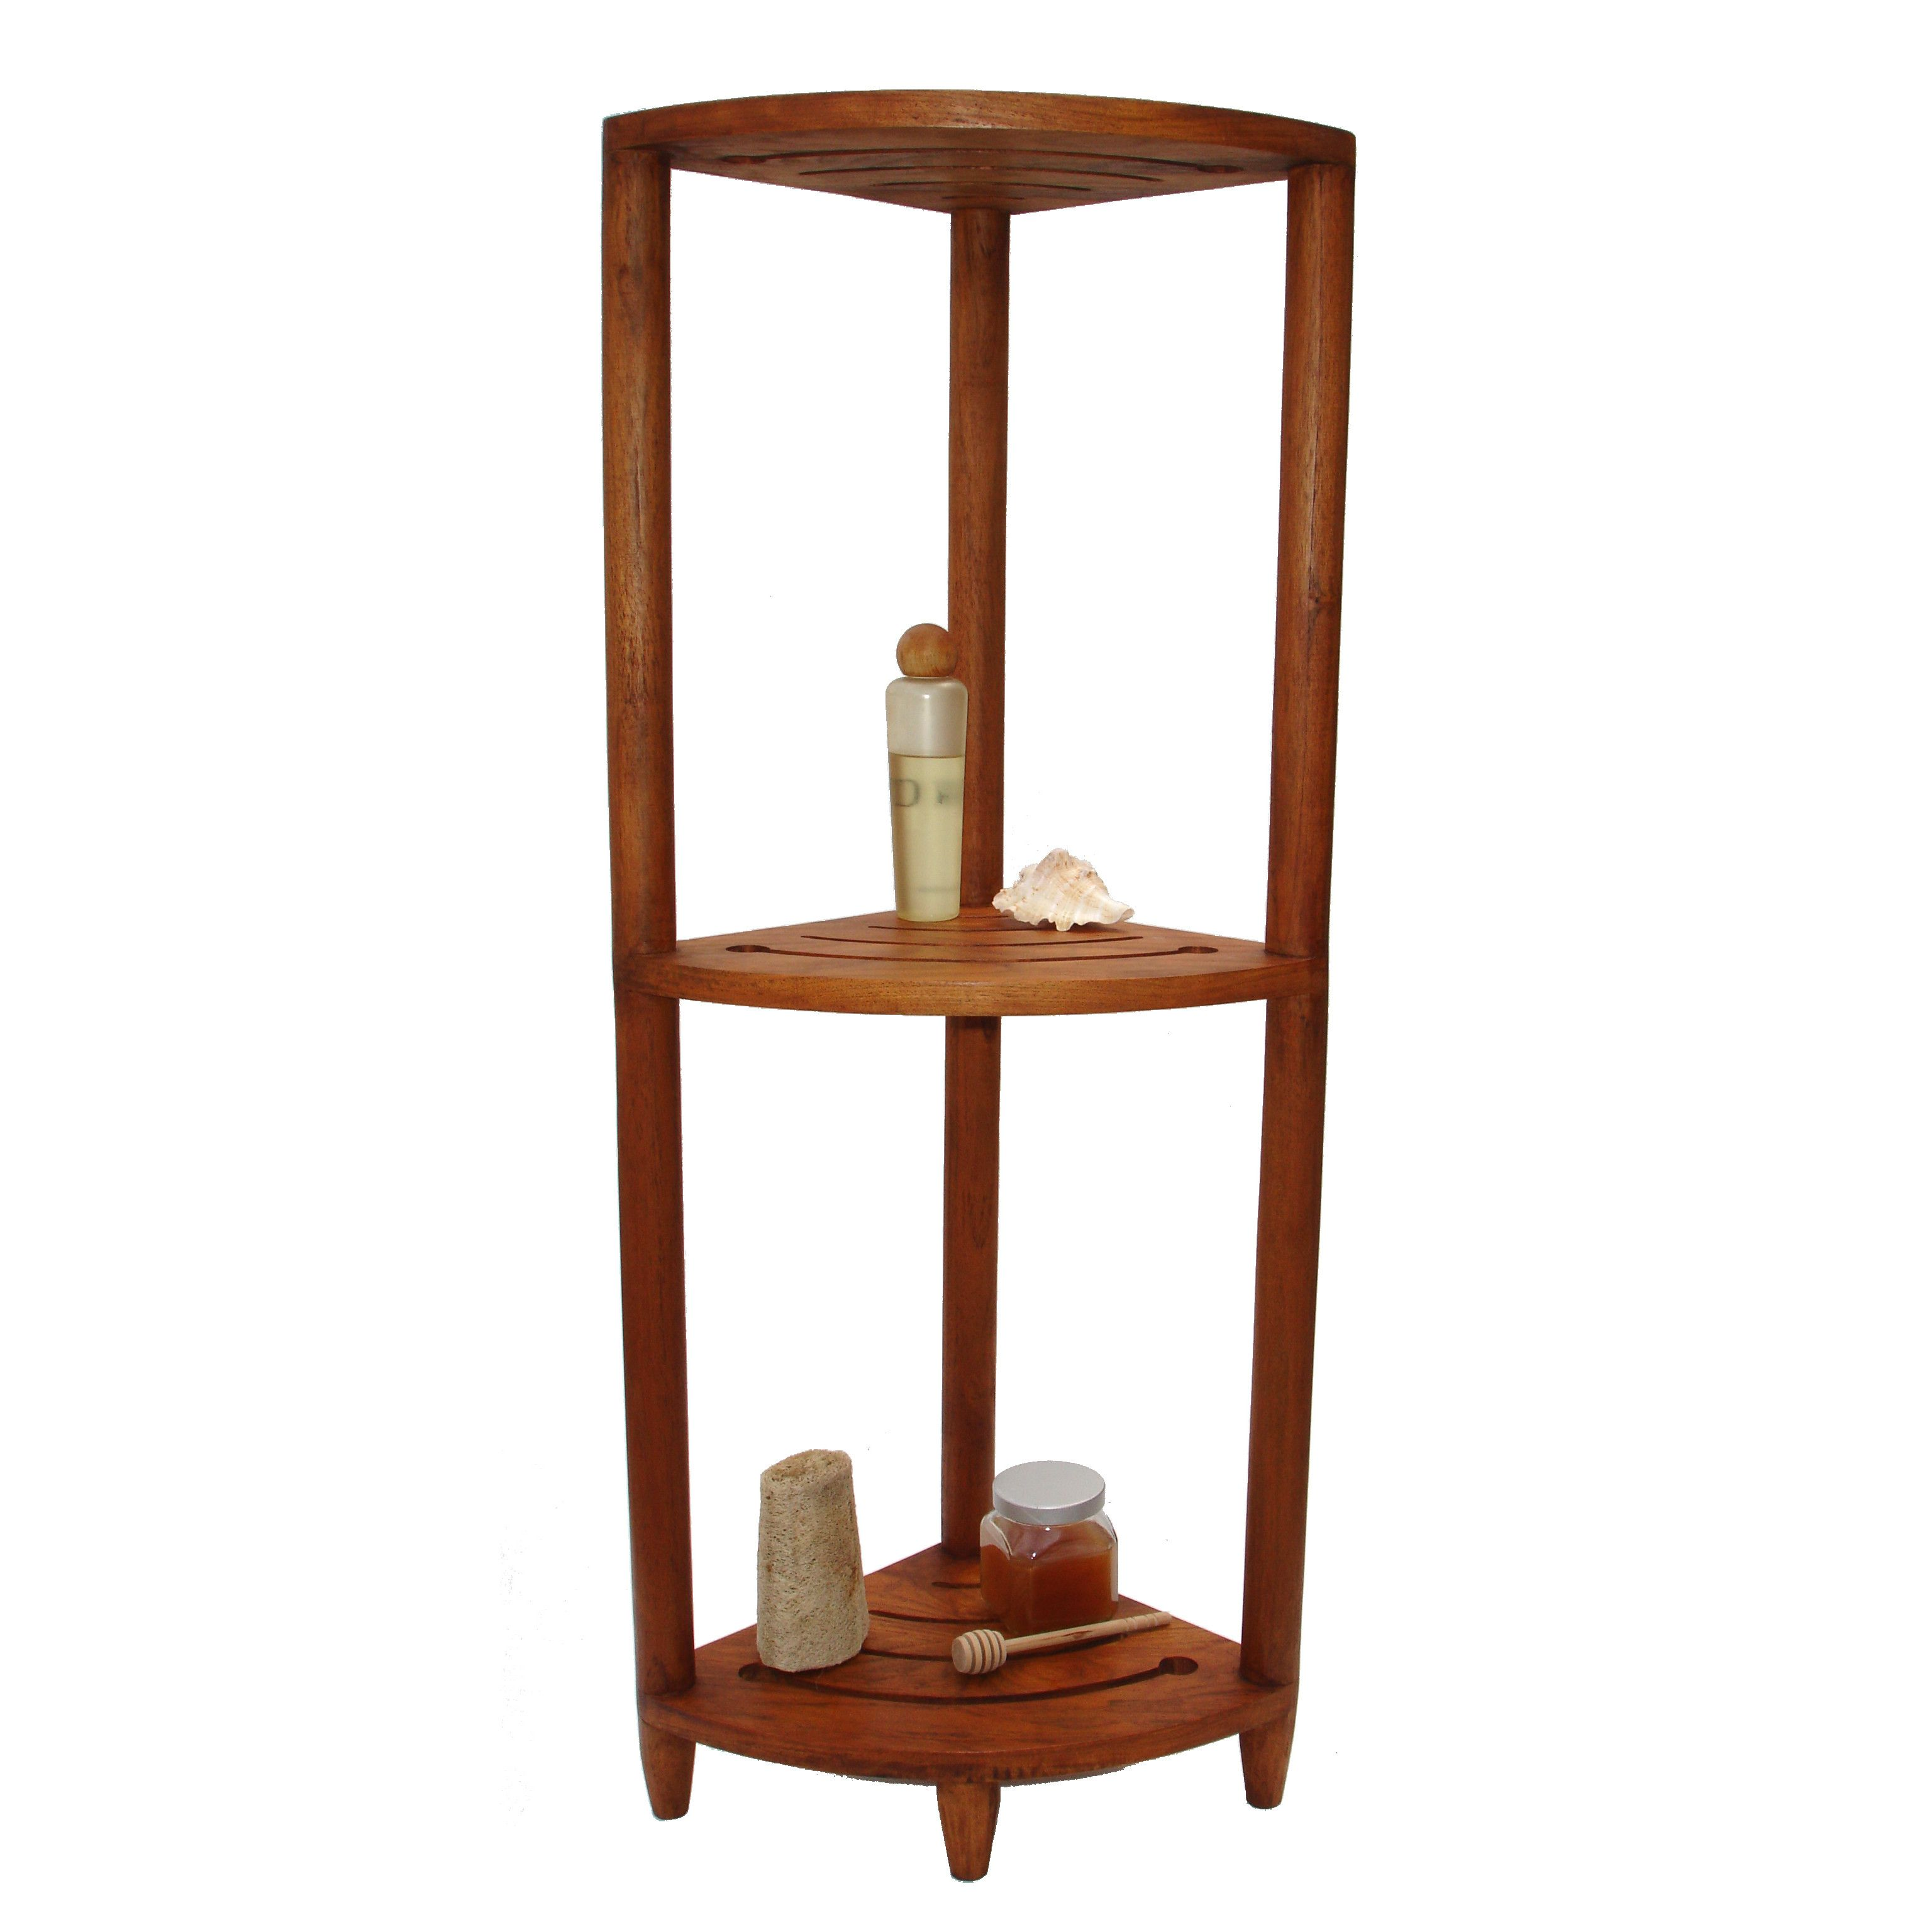 Aqua Teak Spa Teak Corner Shower Caddy | Bathroom | Pinterest ...